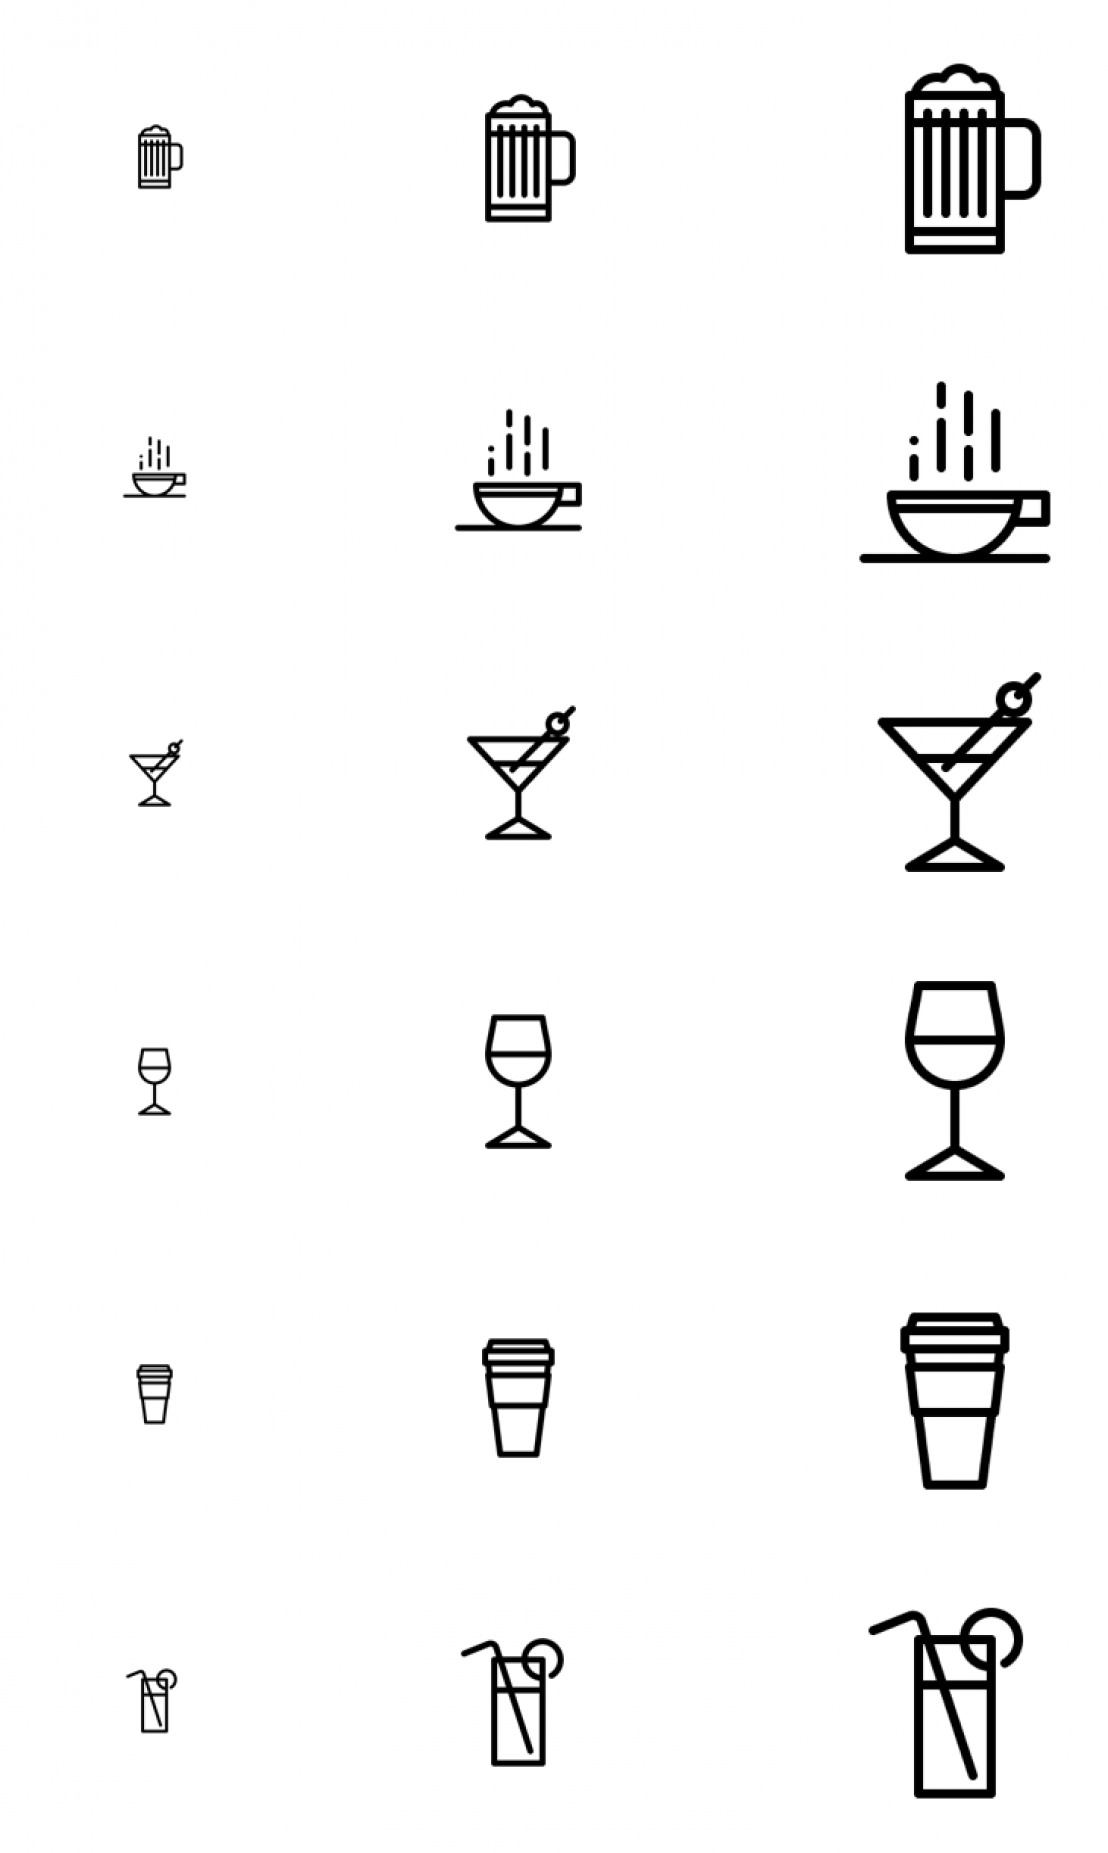 Drinks icons on a white background